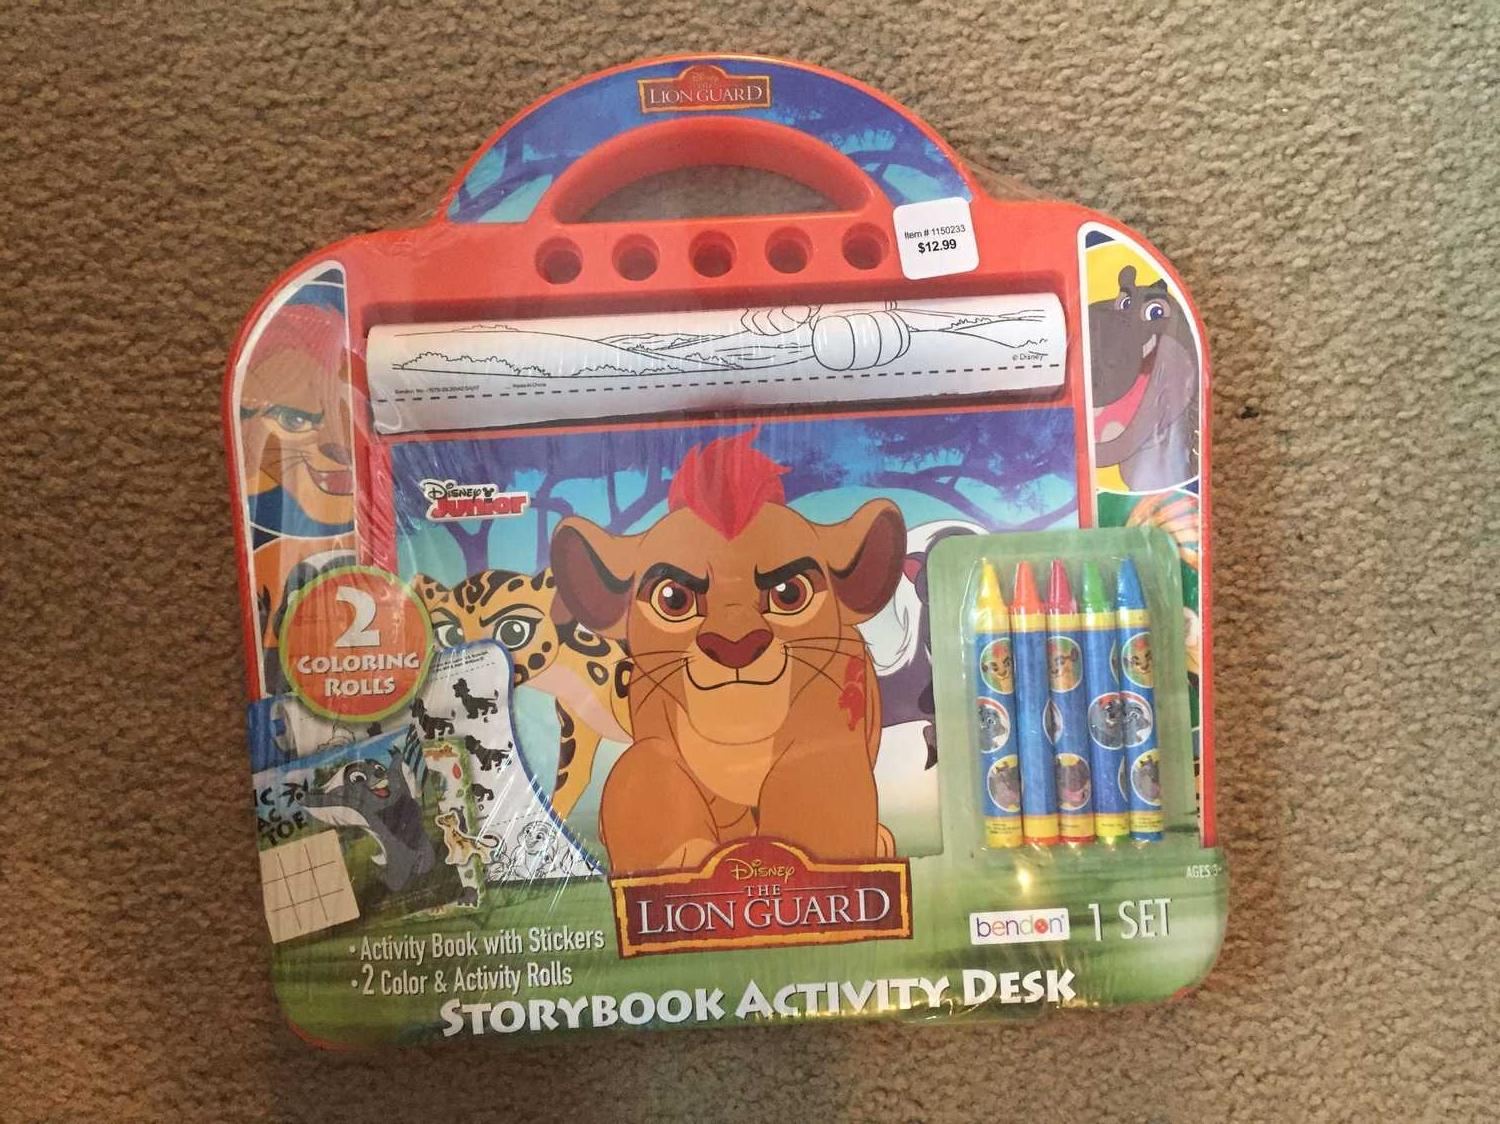 Lion Guard Storybook Activity Desk  Includes:Lap Desk, Activity Book &  Stickers,5 Chunky Crayons & 2 Colour Rolls Brand New in plastic wrap!